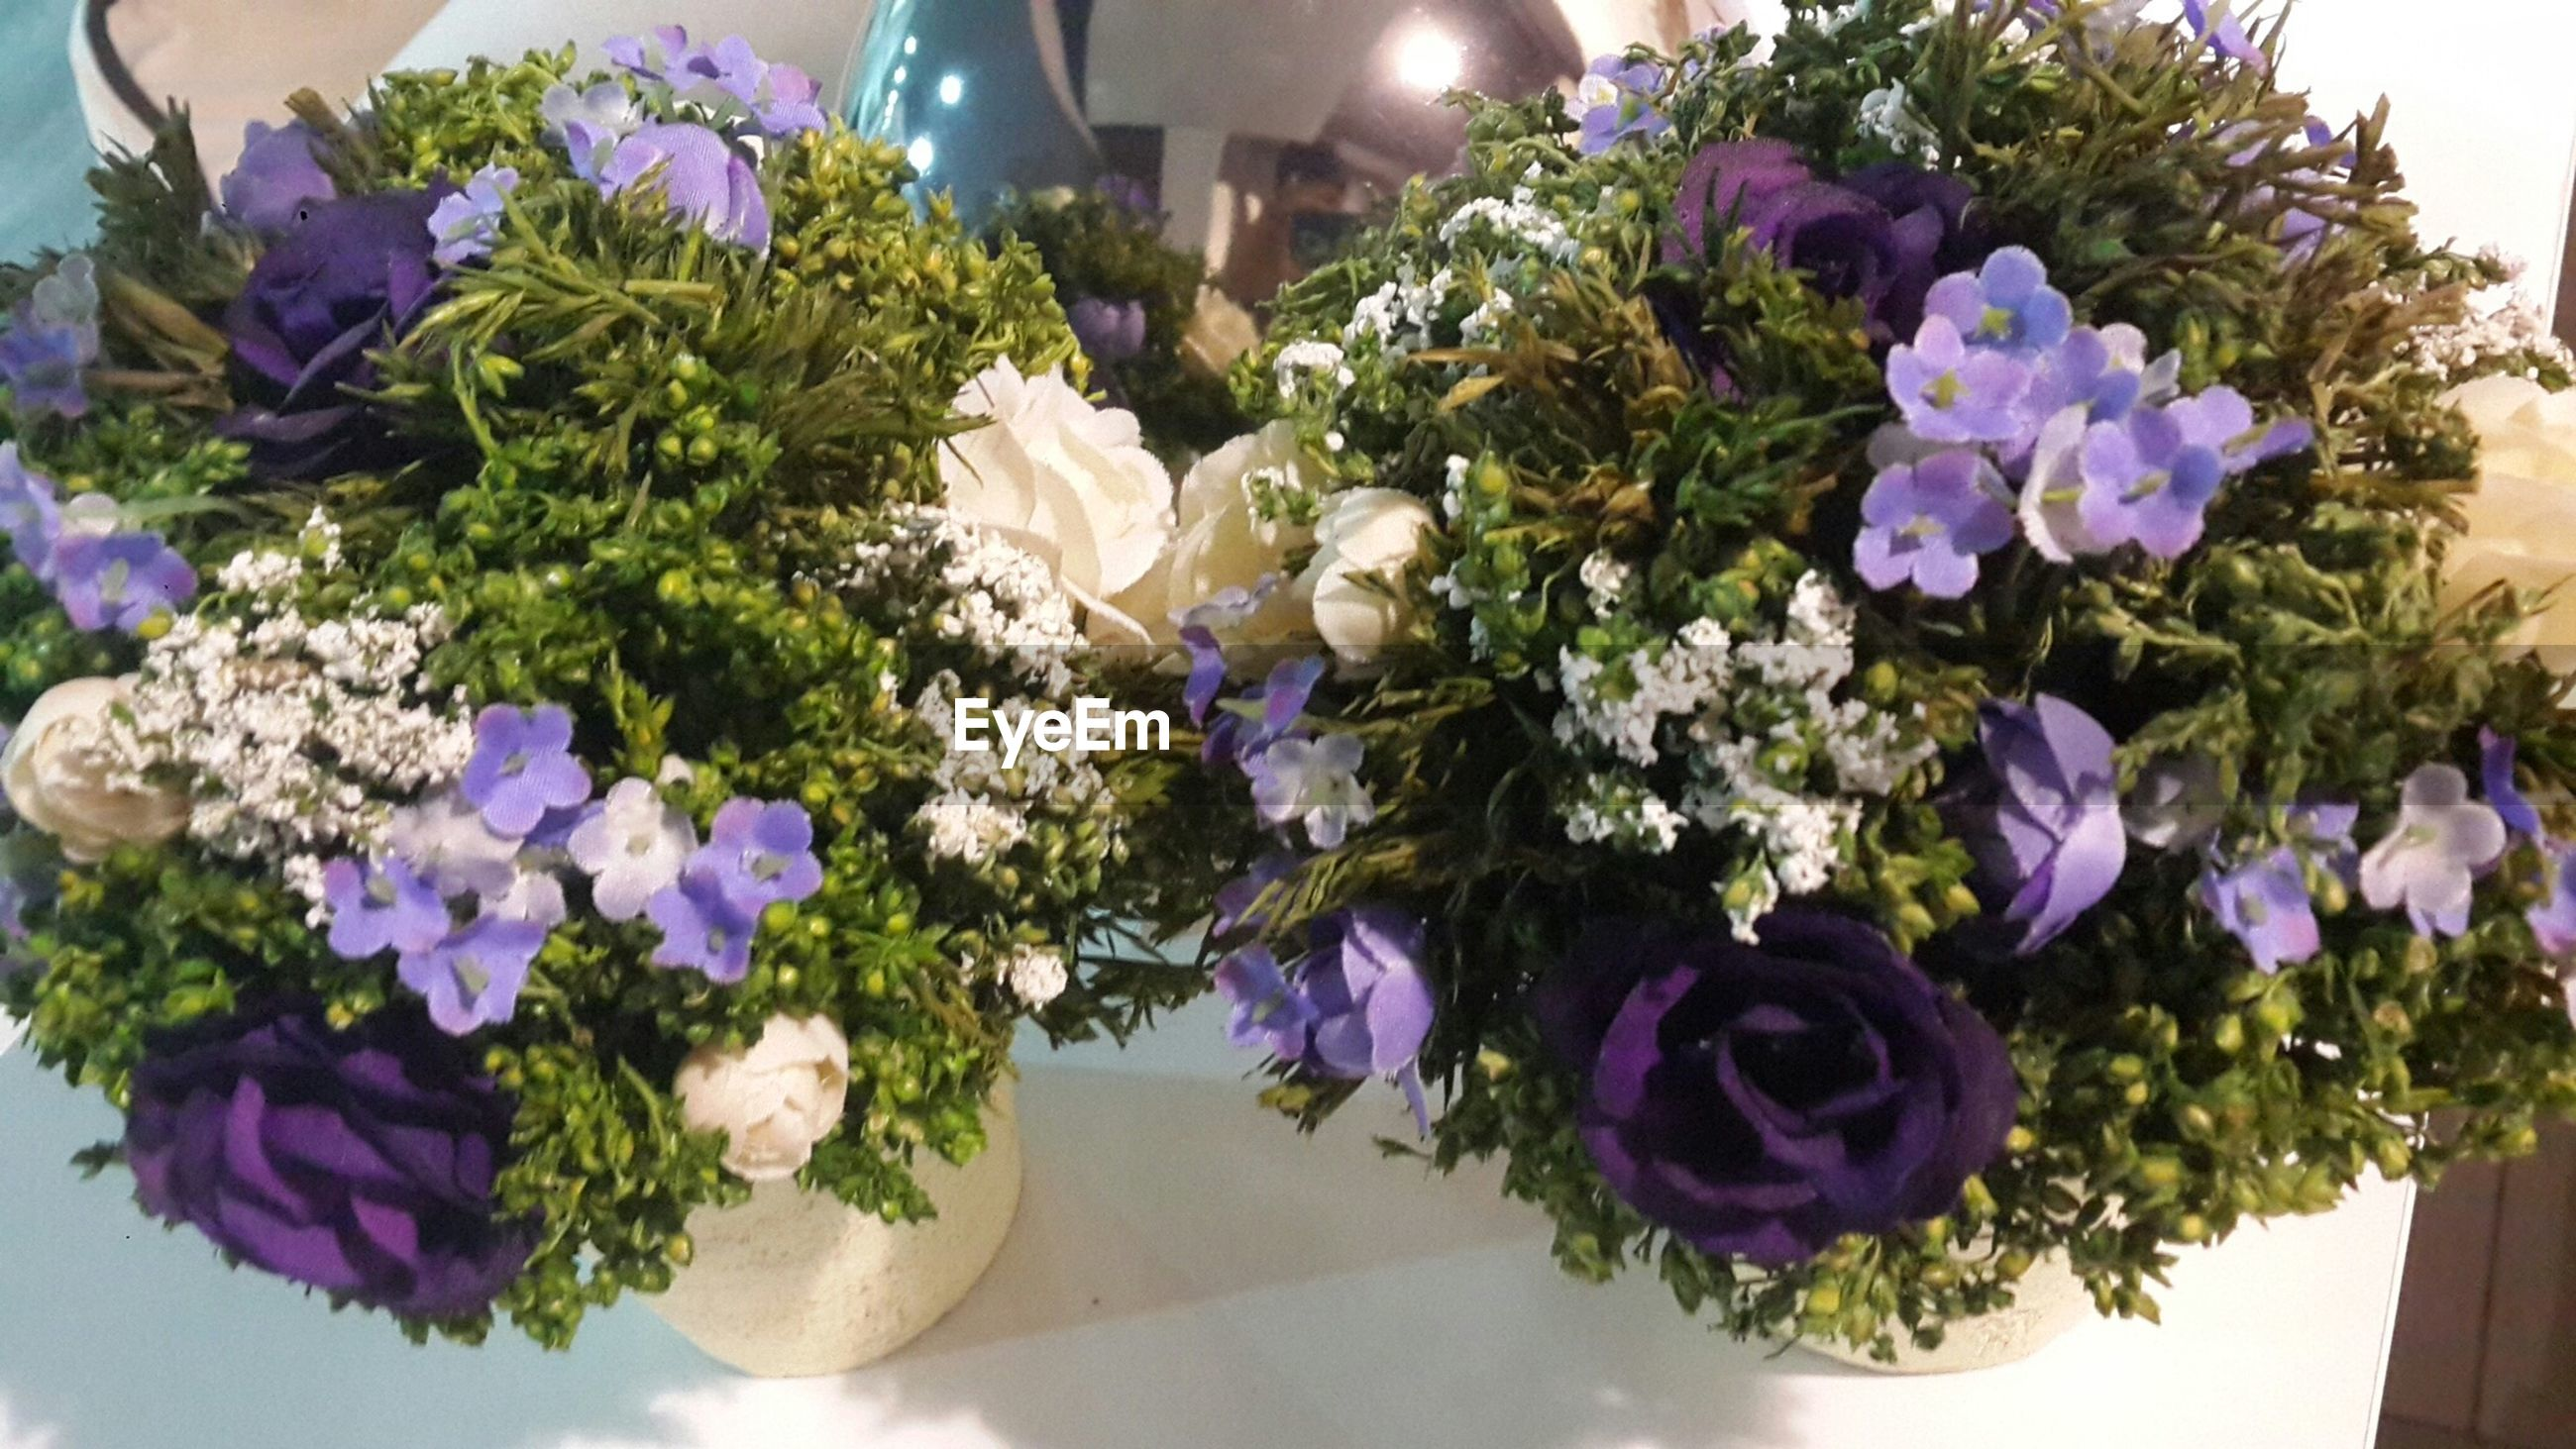 flower, freshness, fragility, purple, petal, growth, flower head, plant, beauty in nature, bunch of flowers, vase, blooming, potted plant, bouquet, nature, indoors, flower arrangement, leaf, in bloom, hydrangea